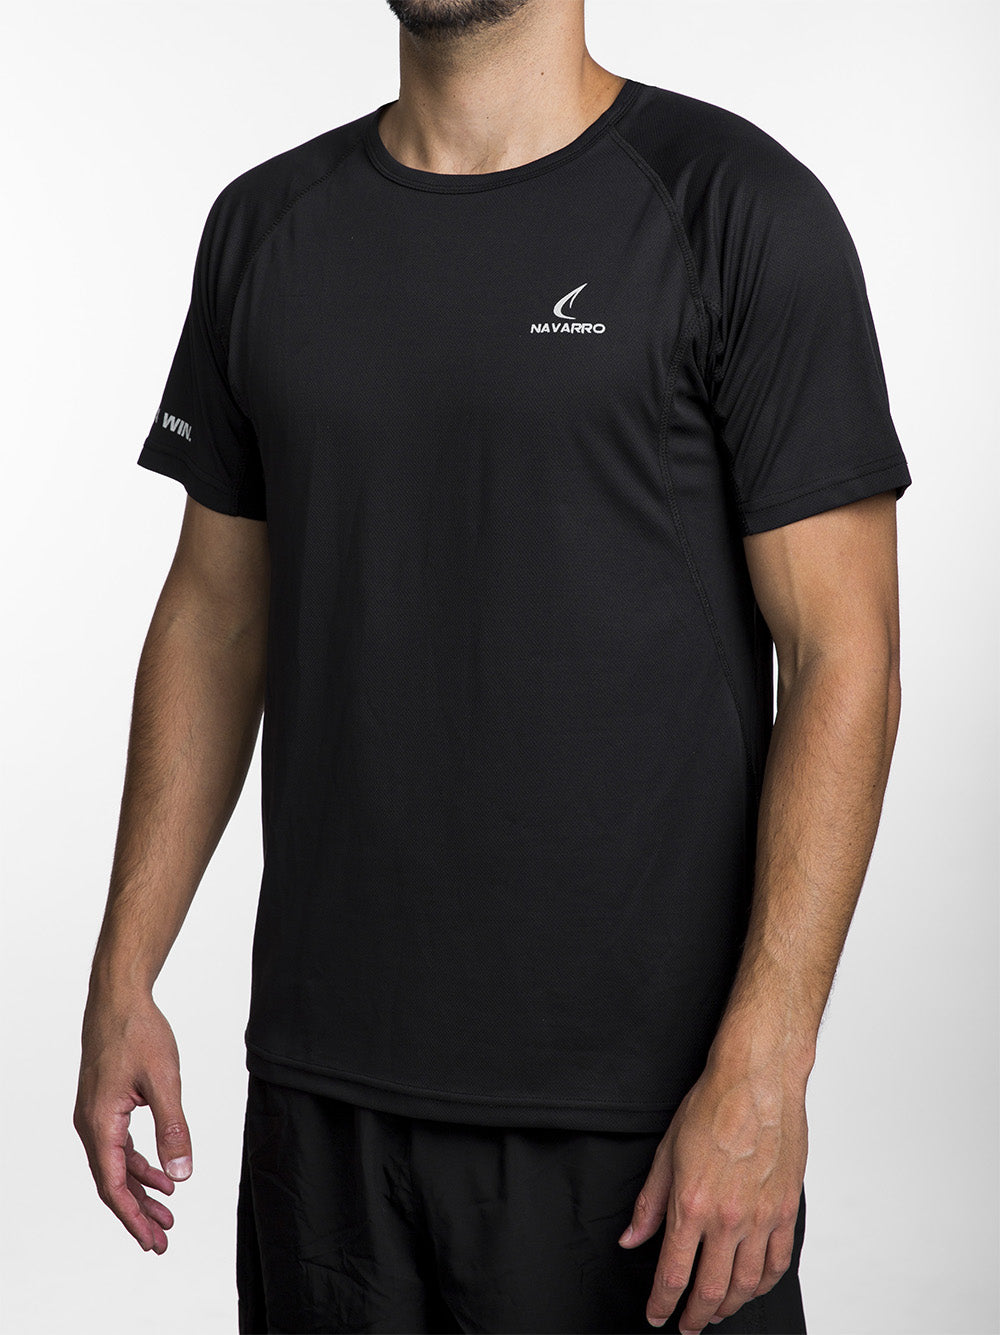 Men's Running Lightweight T-Shirt - Black